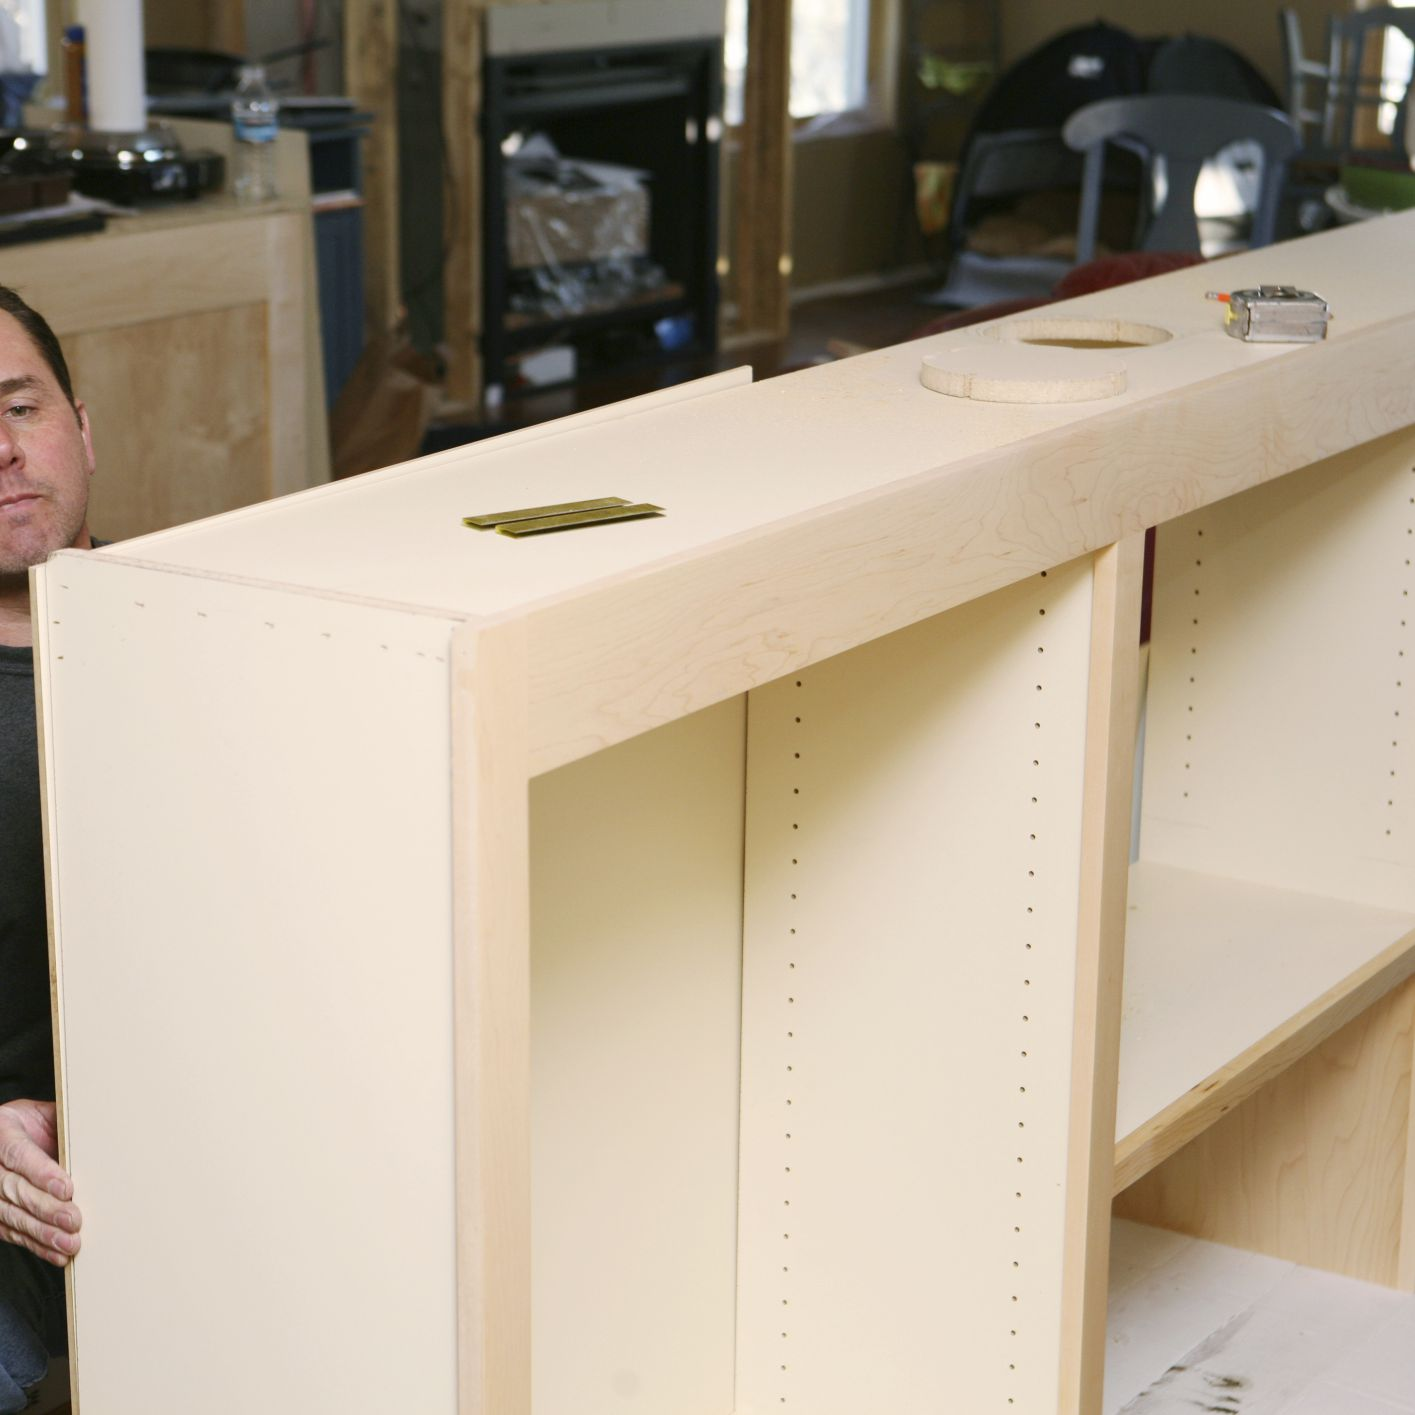 Particle Board Vs Plywood Cabinets